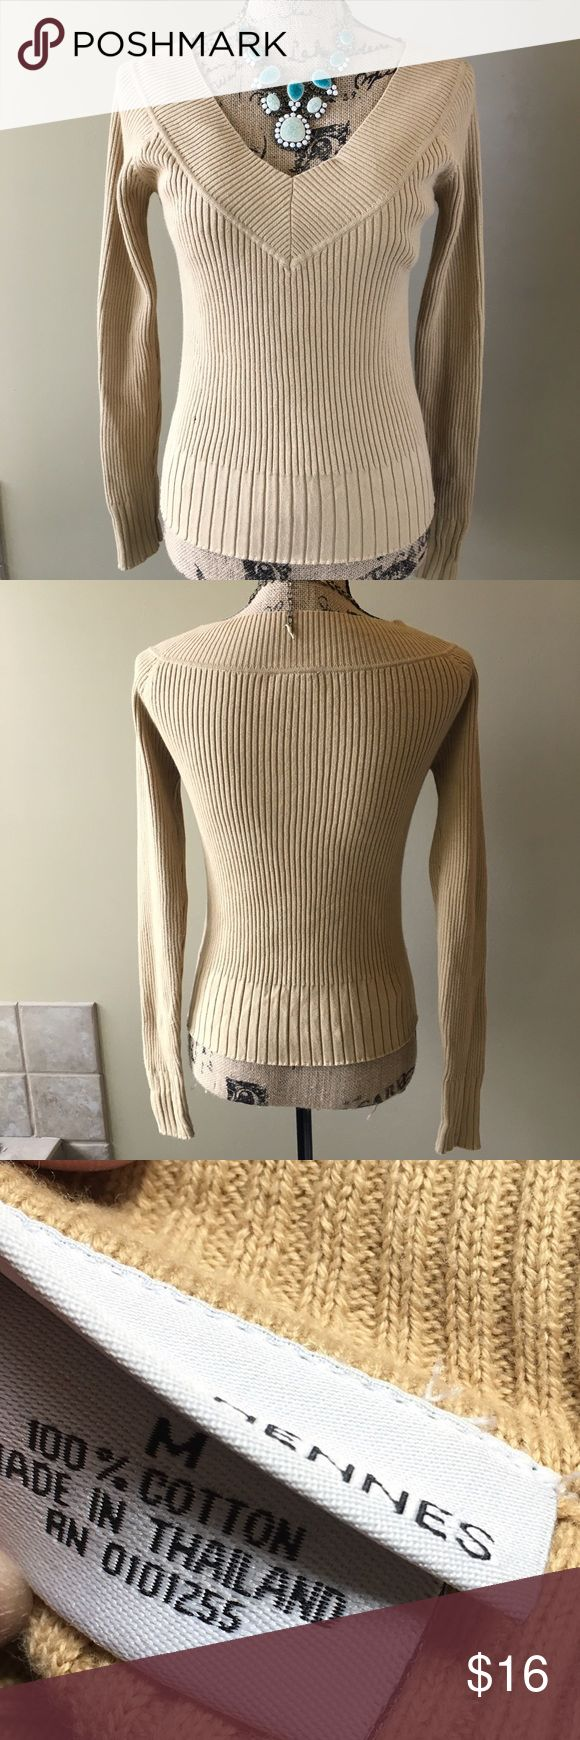 Hennessy deep v-neck ribbed top. A form fitting ribbed top with a deep v-neck. Almost perfect condition. Tiny hole on side as seen in image. Price is reflected. Add this to a bundle to save 15%. For jewelry, visit my profile for a link to shop. Hennes Sweaters V-Necks